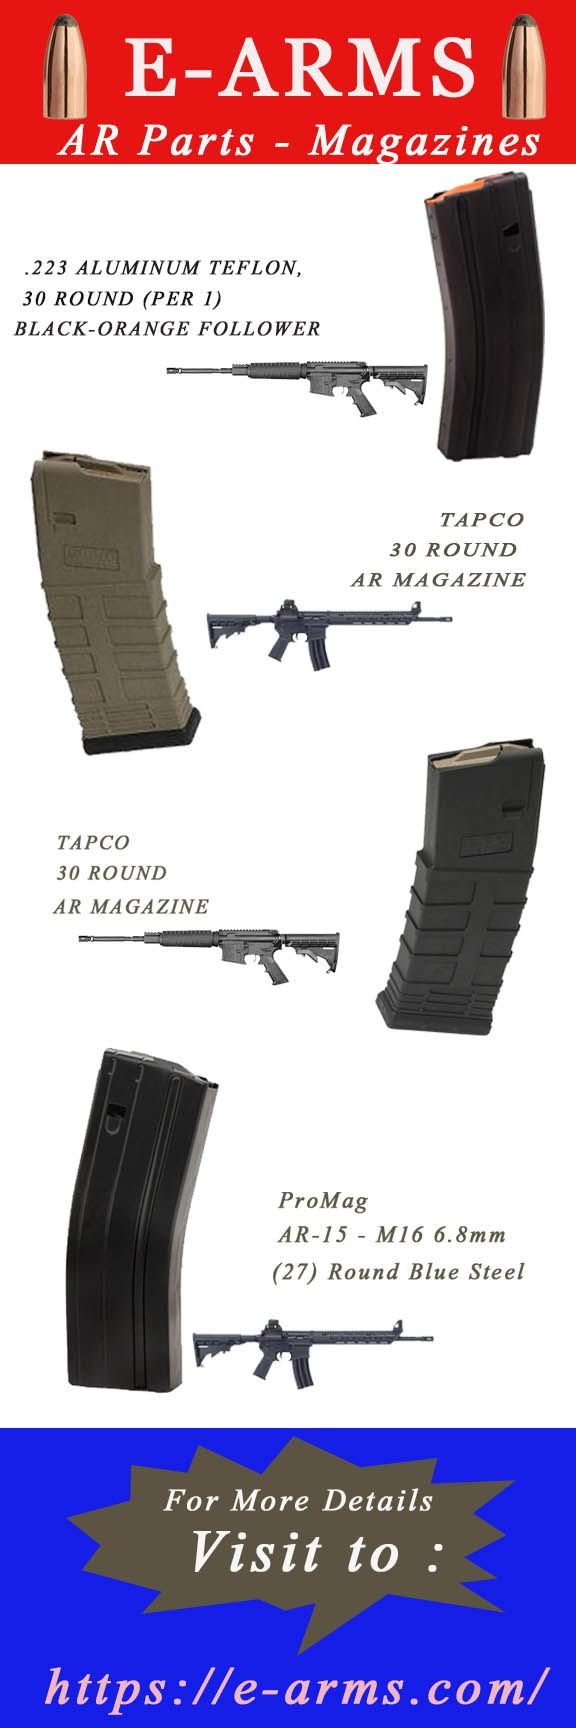 Get the Cheap AR Parts like magazines in different varieties capacity of 5 round to 30 round at e-arms.com.